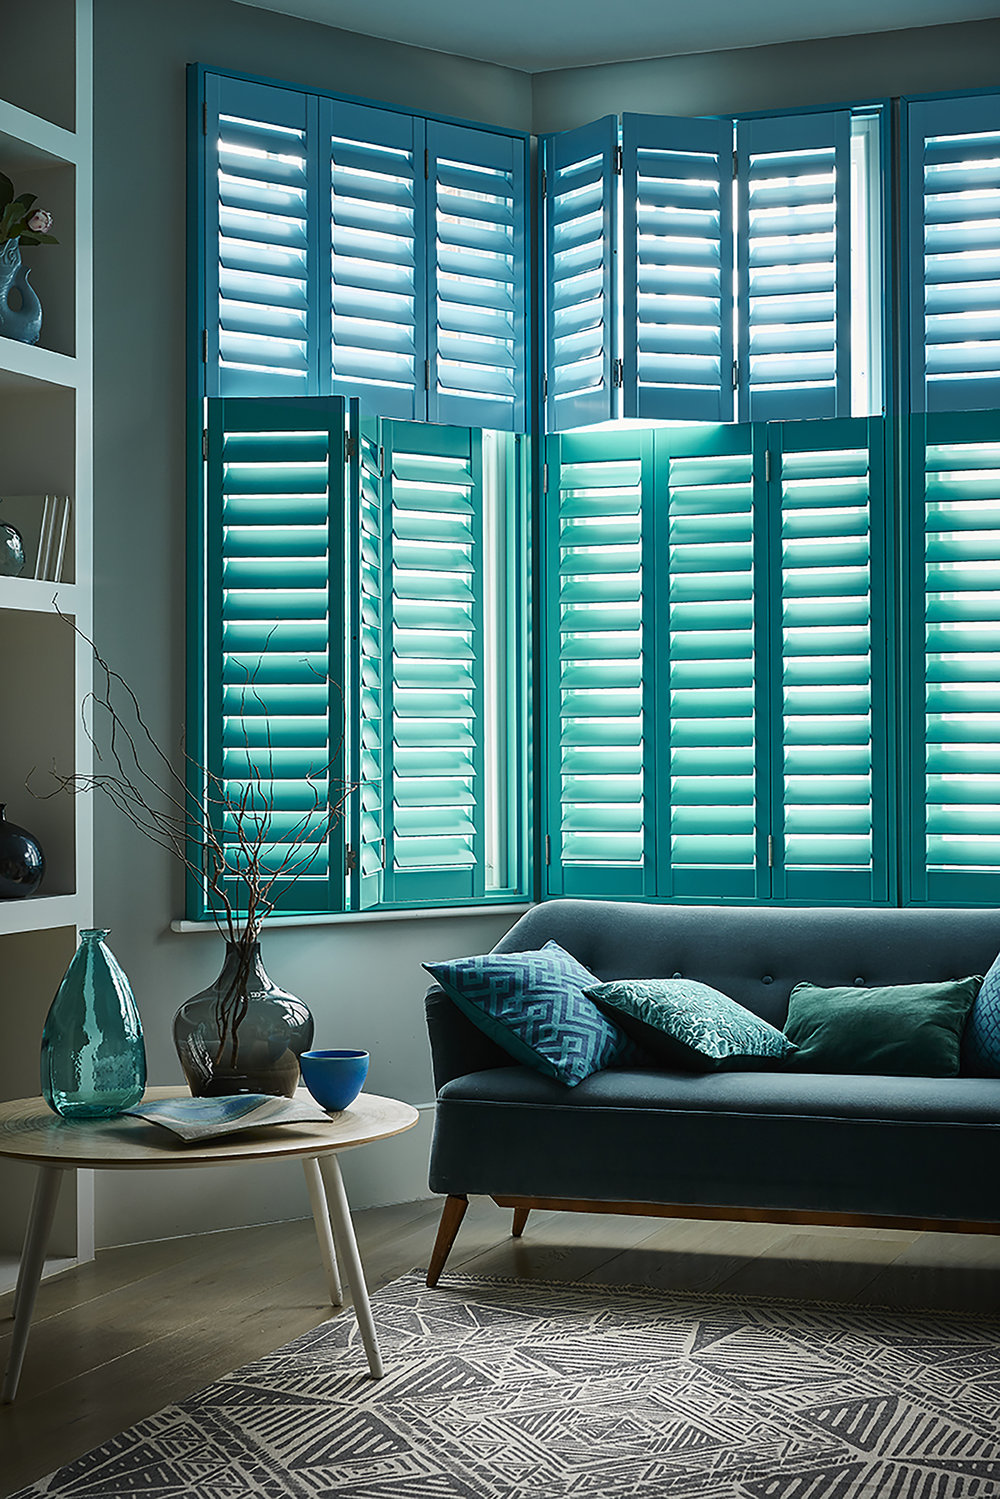 Shutterly Fabulous offer a colour matching service which means you can match the colour of your shutters to your sofa!